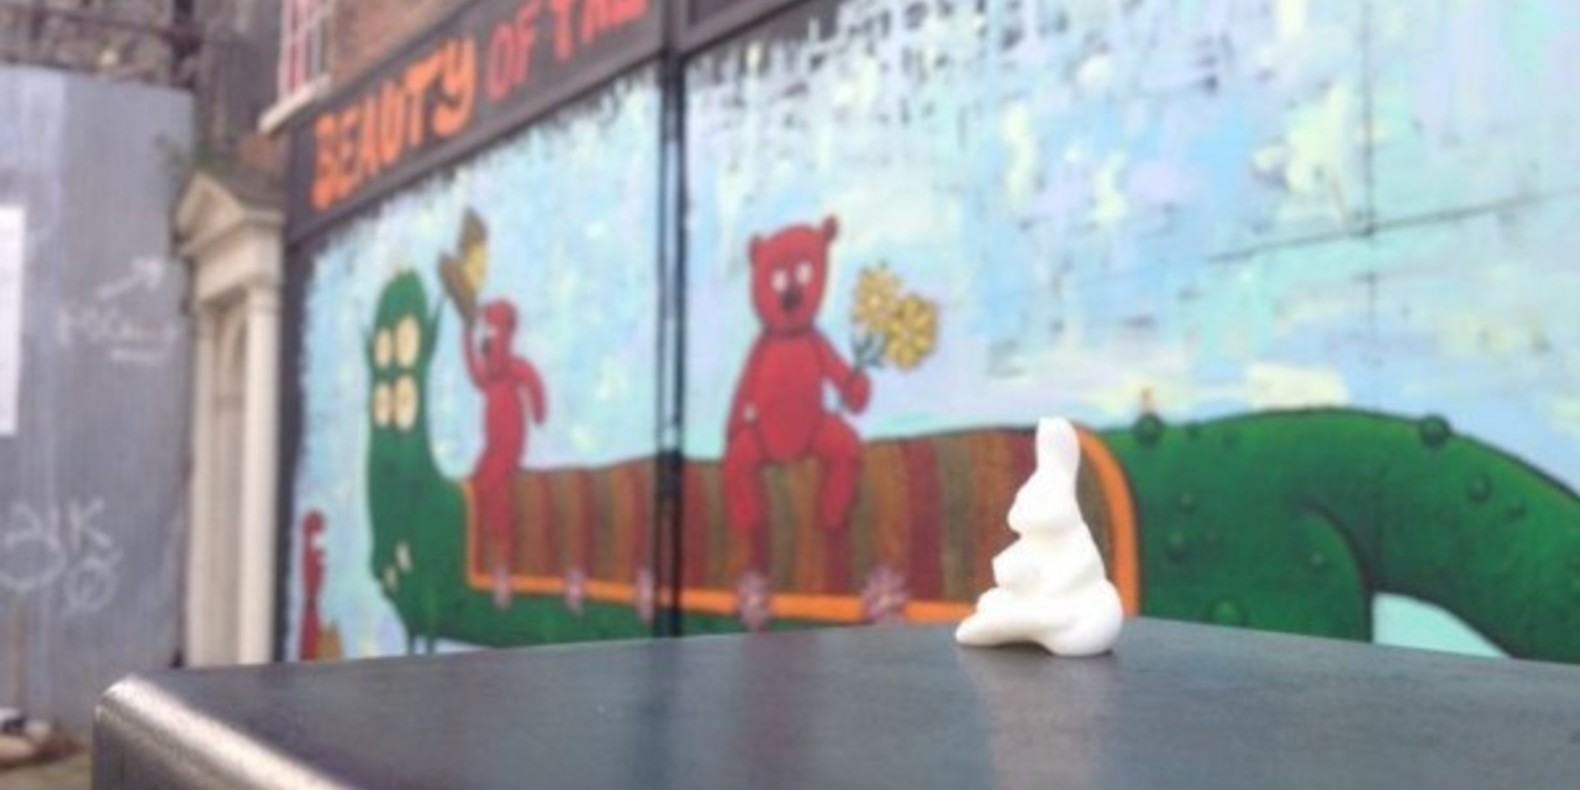 3D printed bunnies hidden in cities